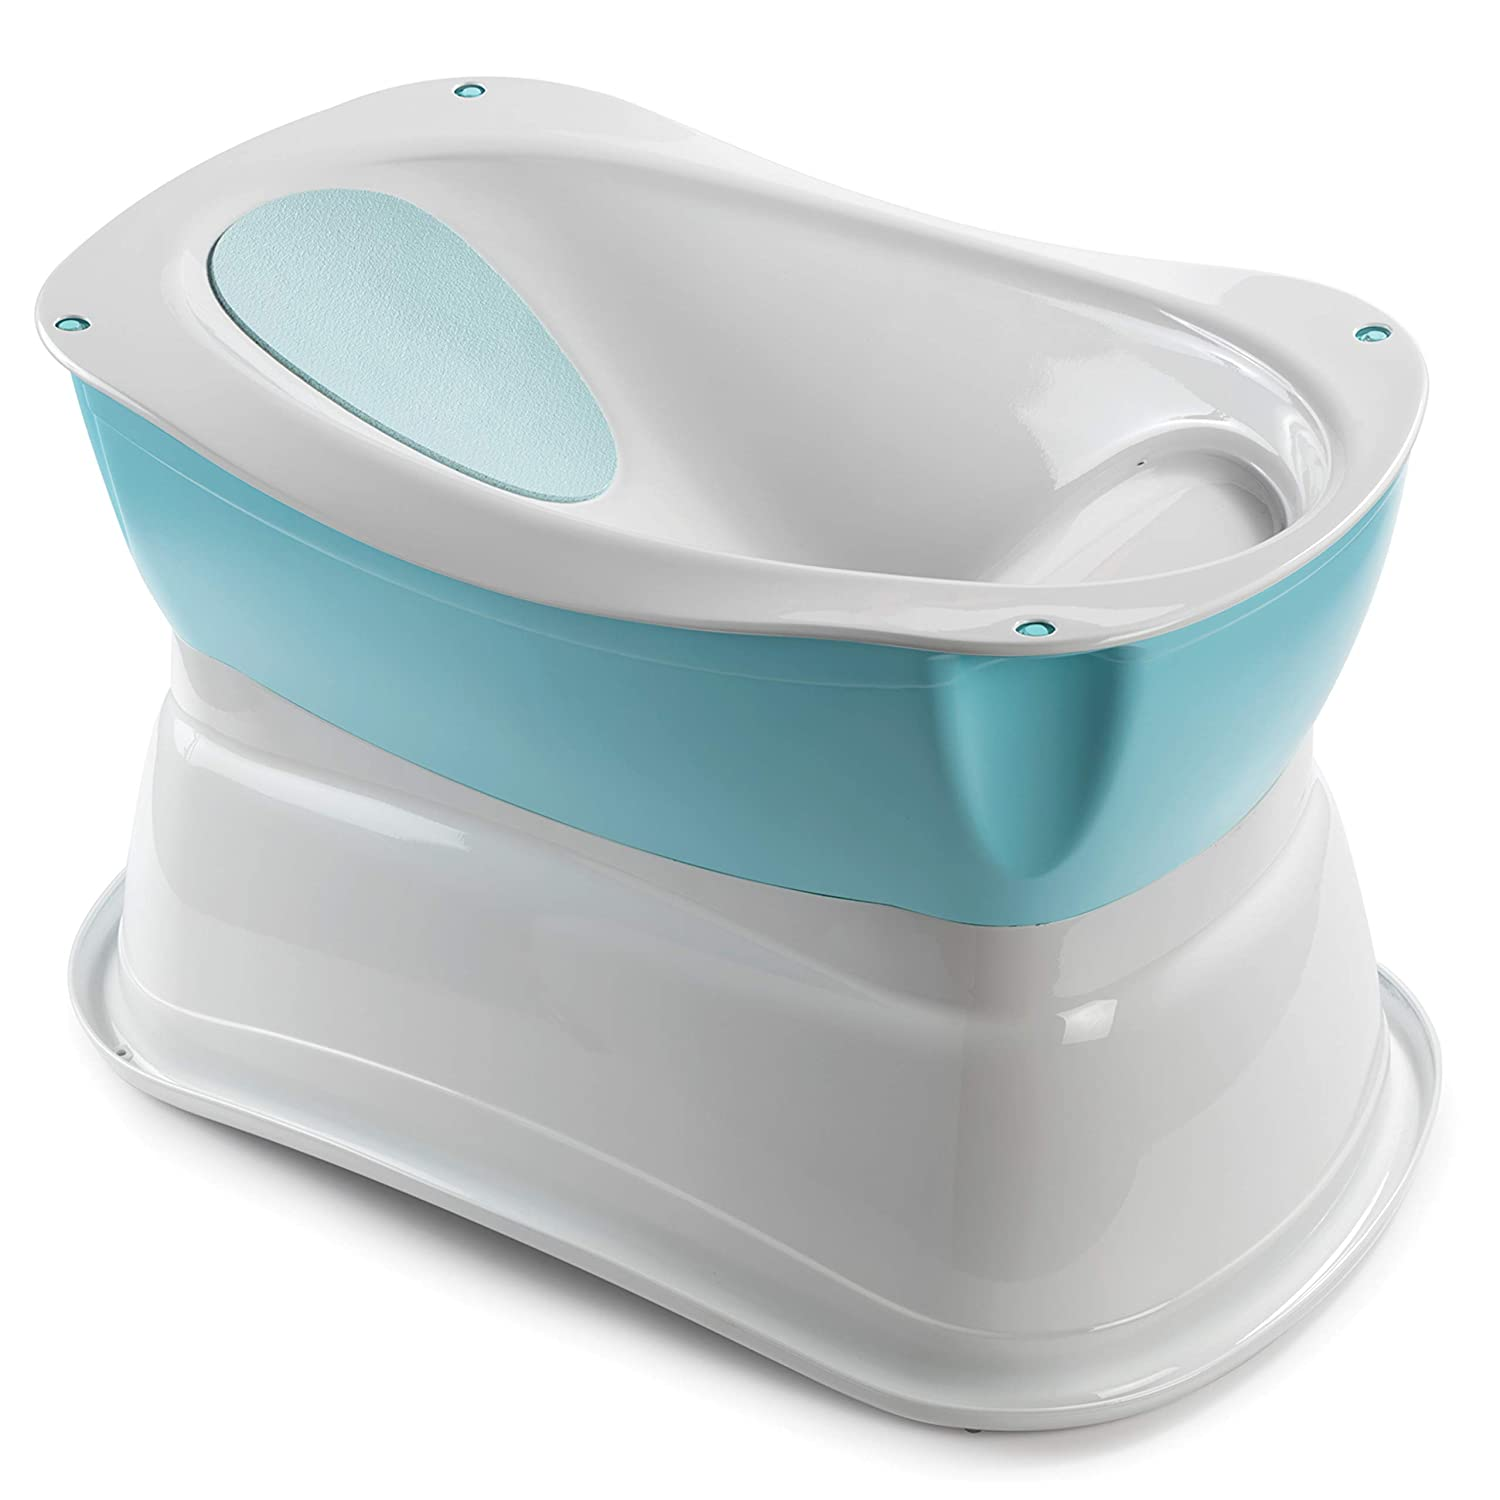 Amazon.com : Summer Infant Right Height Bath Tub, Blue : Baby